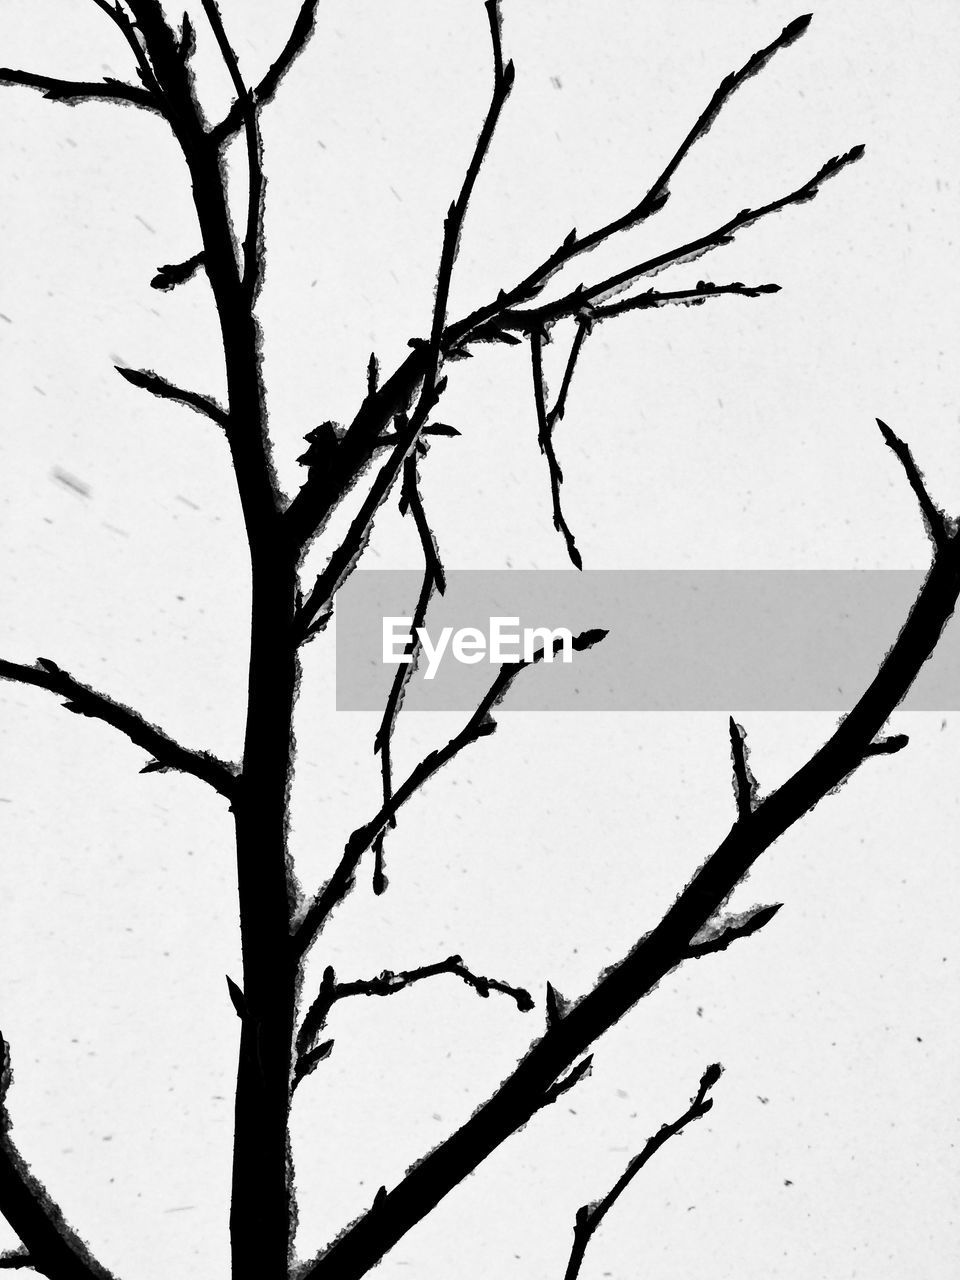 nature, branch, no people, outdoors, day, beauty in nature, cold temperature, snow, growth, winter, tree, bare tree, close-up, clear sky, sky, freshness